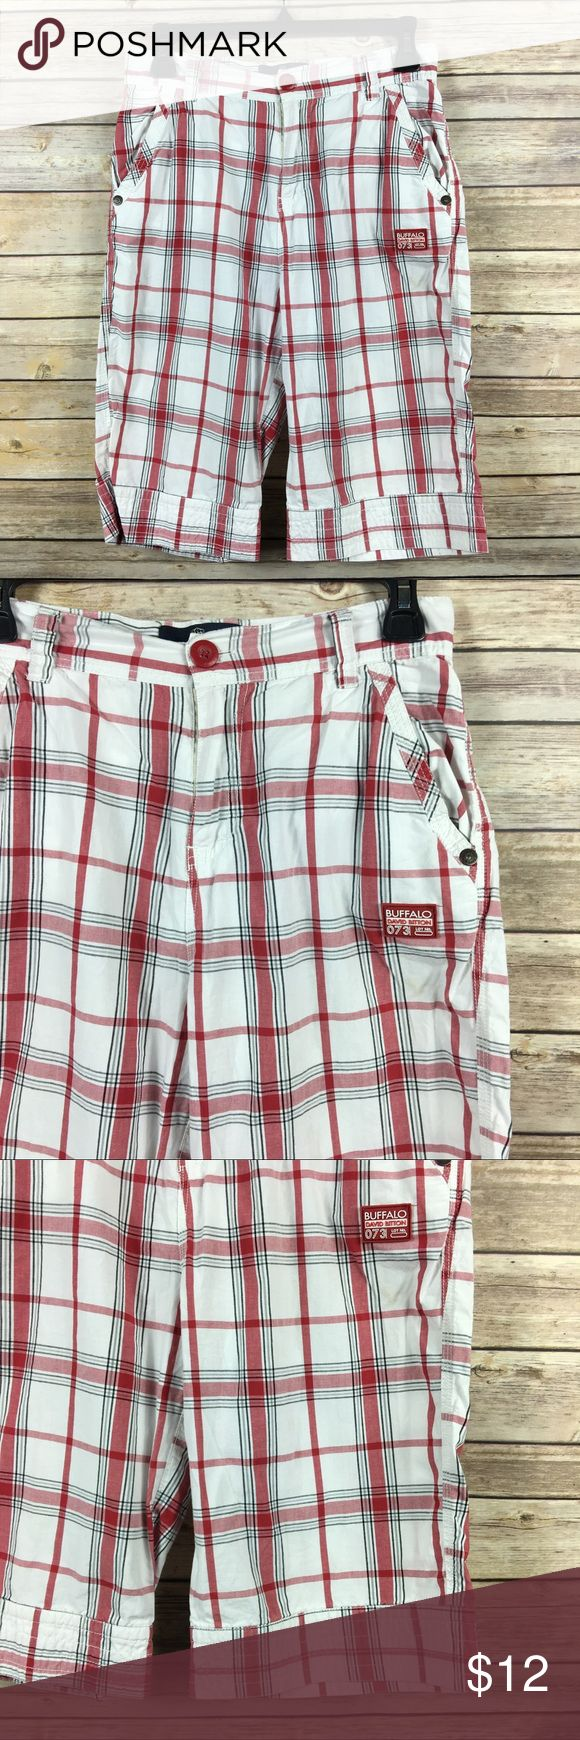 Buffalo David Bitton Plaid Red & White Shorts 14 Buffalo David Bitton Plaid Shorts Red and White Size 14  100% Cotton  Waist 28 in Inseam 12 in Thanks for visiting! Buffalo David Bitton Bottoms Shorts